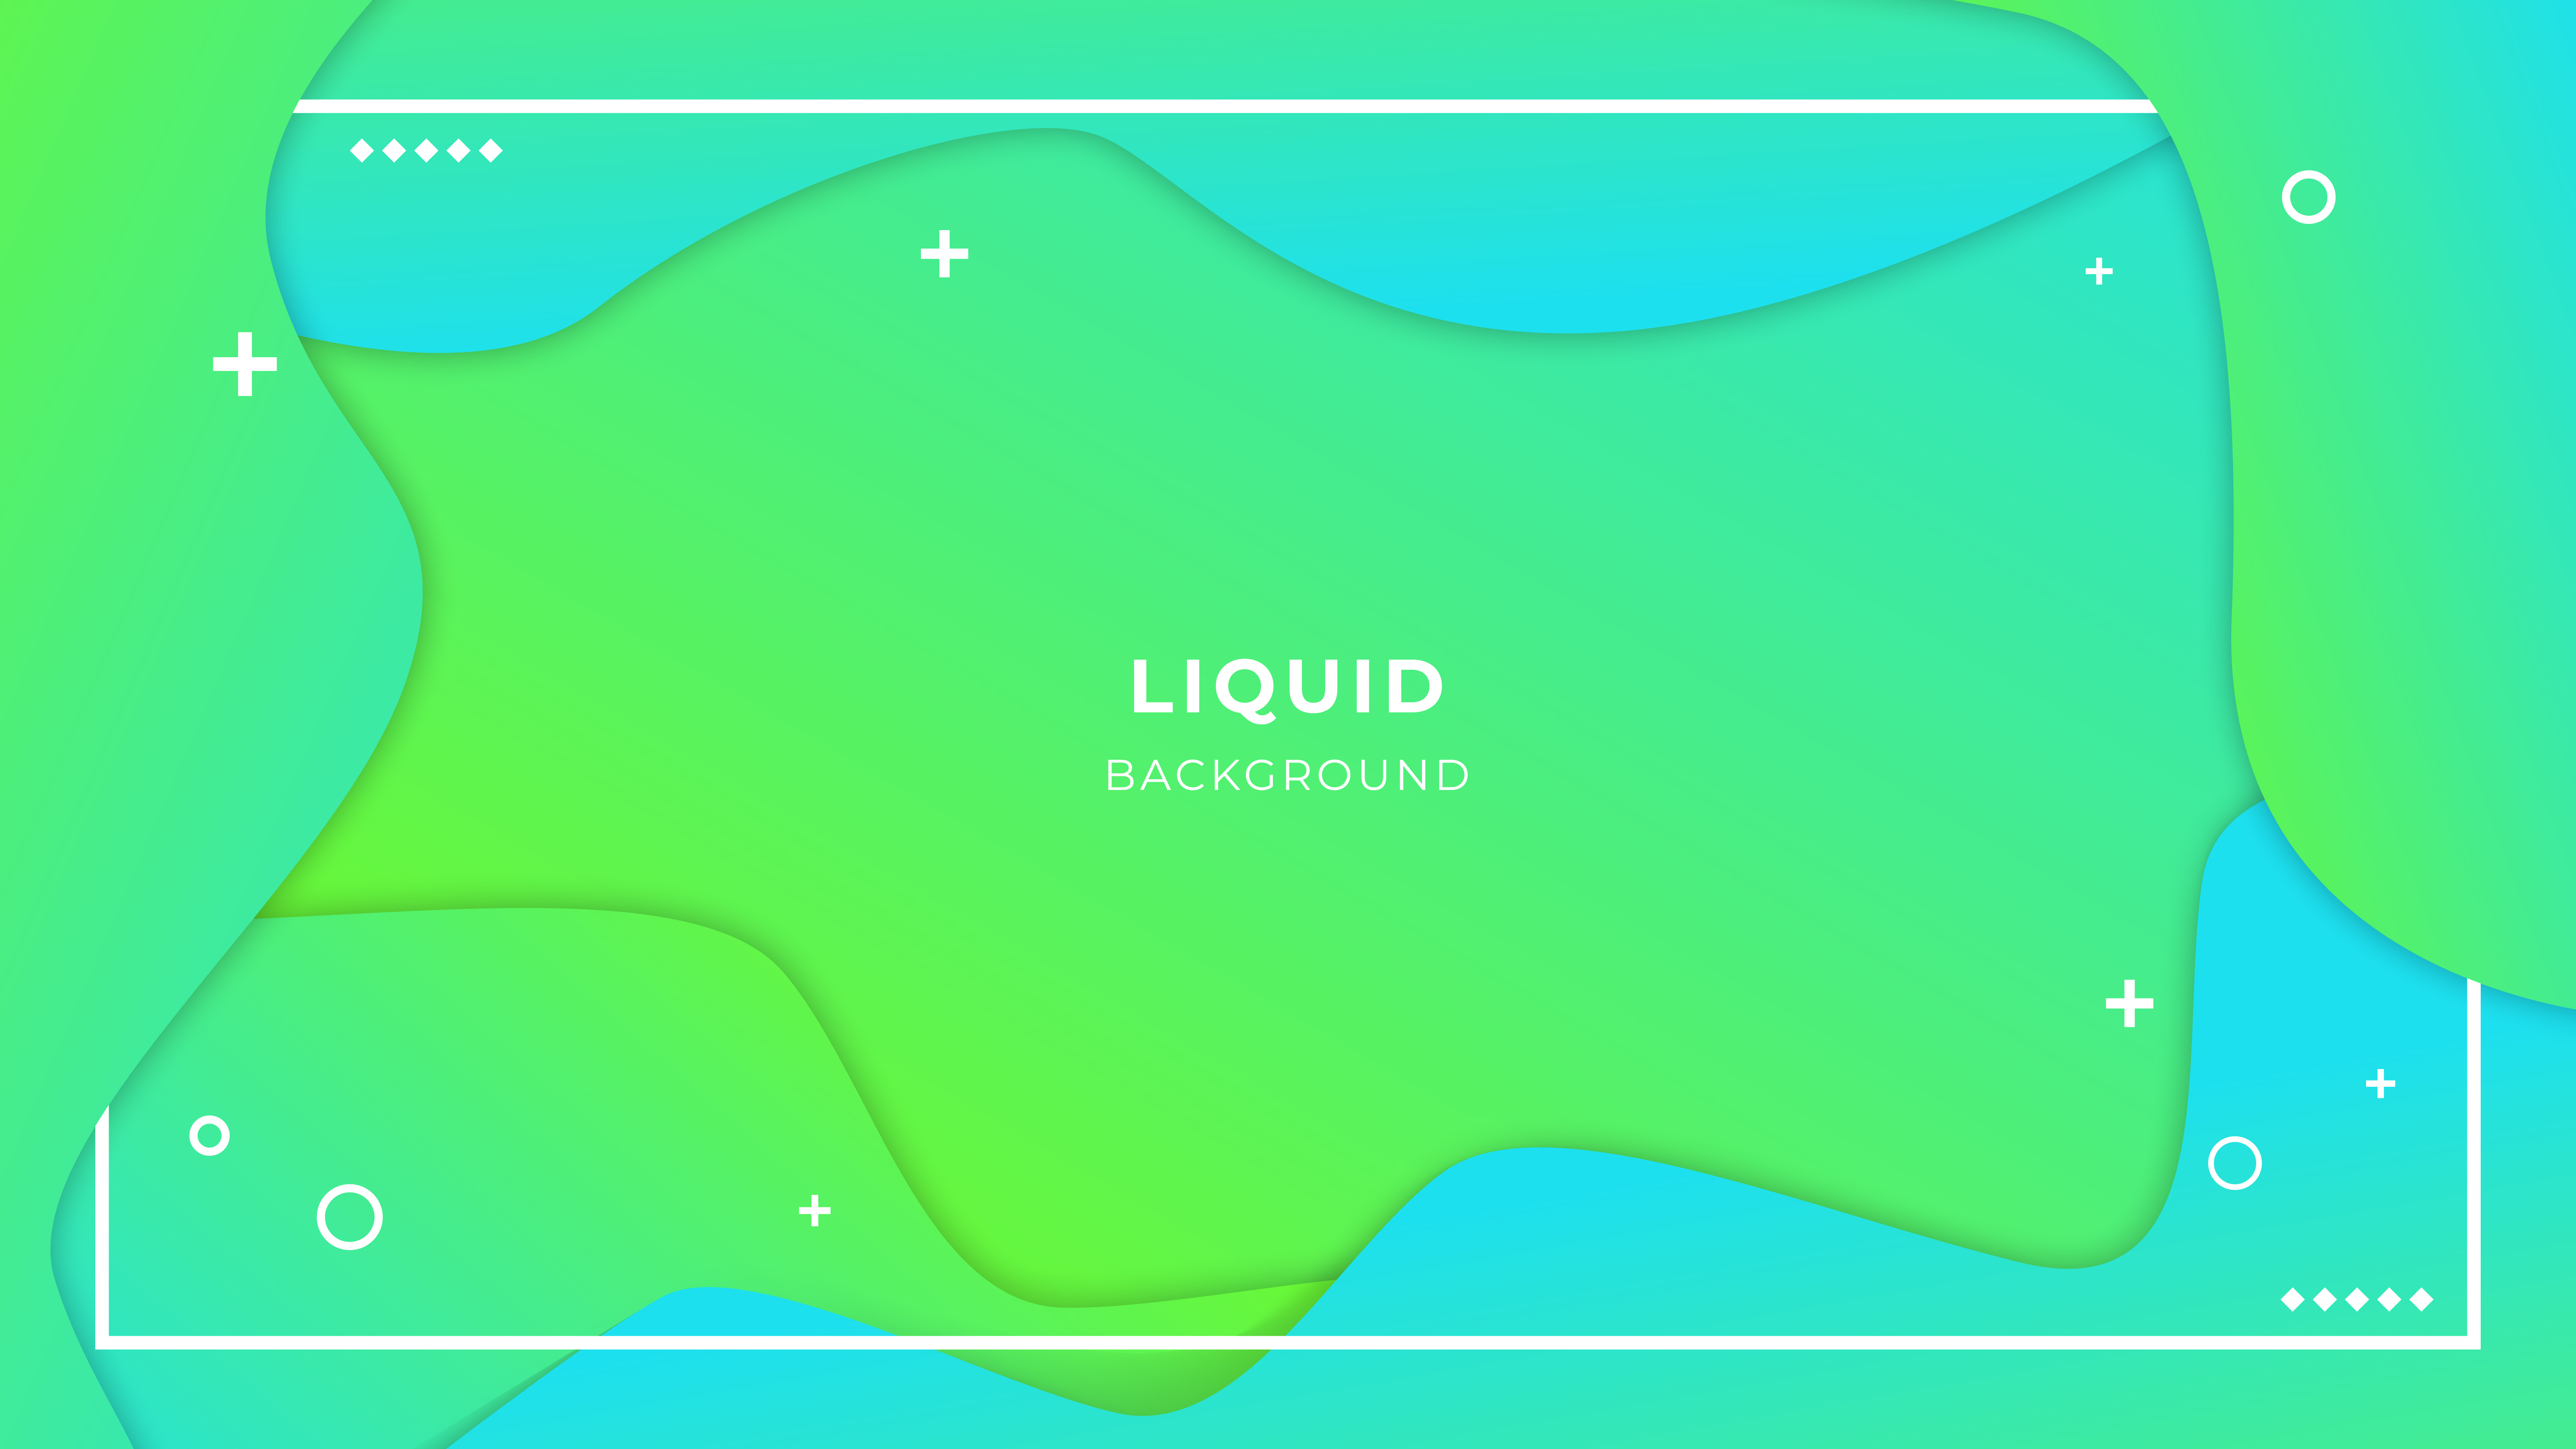 Abstract Liquid Background With Simple Shapes With Trendy